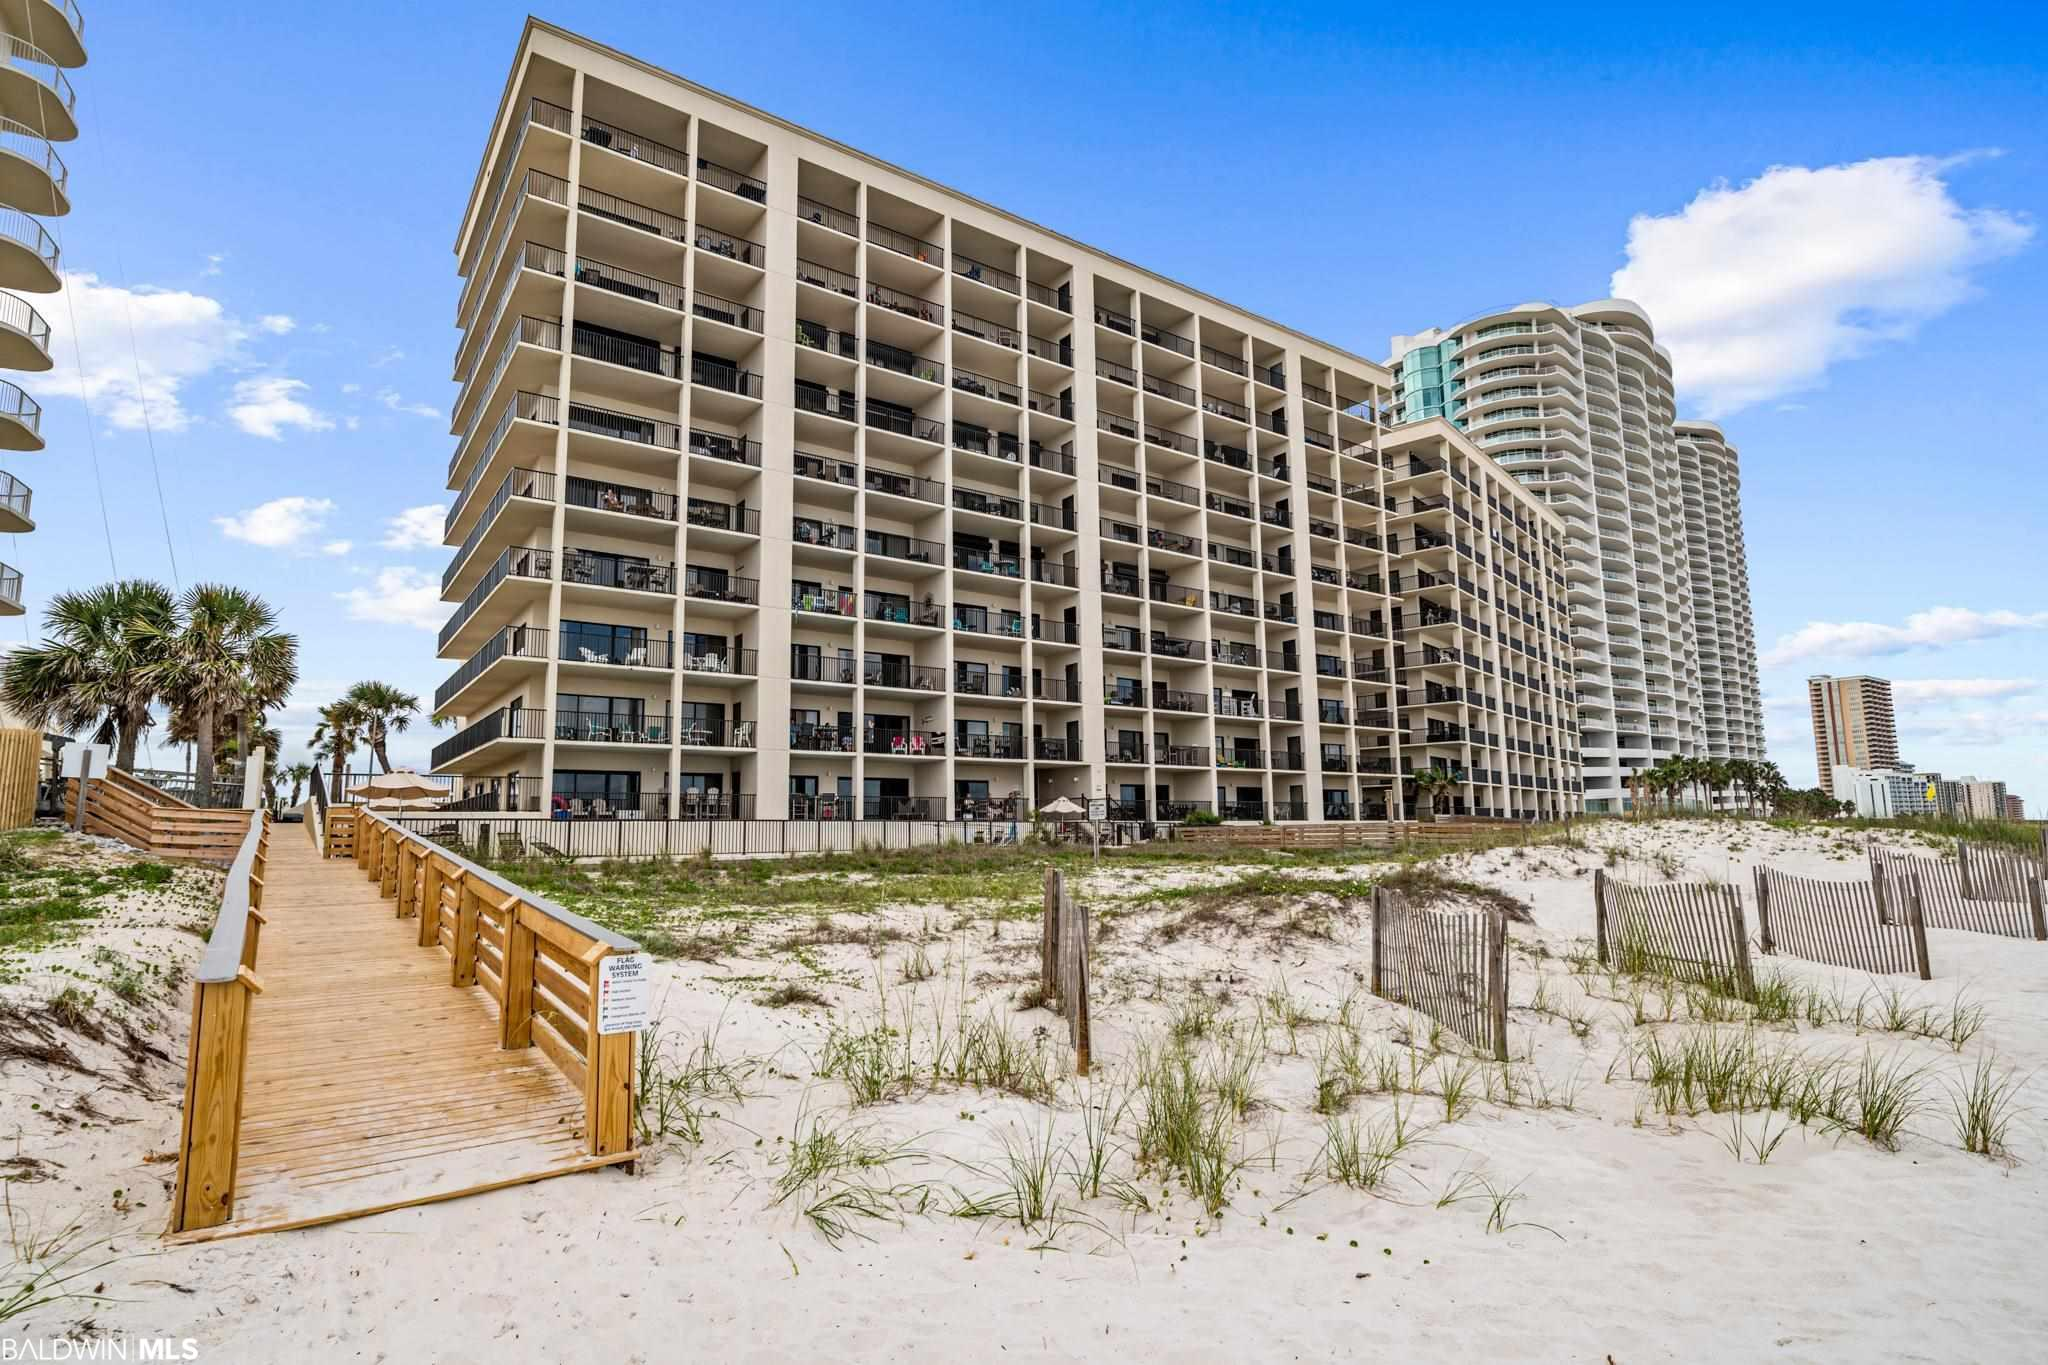 Direct Gulf front unit in the heart of Orange Beach, AL! Close to local restaurants, shopping, and entertainment. This 3 bed/2 bath unit offers breathtaking views of the Gulf of Mexico! Step out onto your very own private balcony, either from the living room or the master suite, and enjoy the amazing Gulf Coast sunsets and views of the white sandy beaches. The open kitchen is fully equipped with everything needed for you or your guests, and there is a full sized washer and dryer in the unit. This complex also offers some great amenities - beachside outdoor pool, indoor heated pool, sauna, grill area, tennis court, sun deck, fitness room, and private beach boardwalk. Check out the virtual tour video!